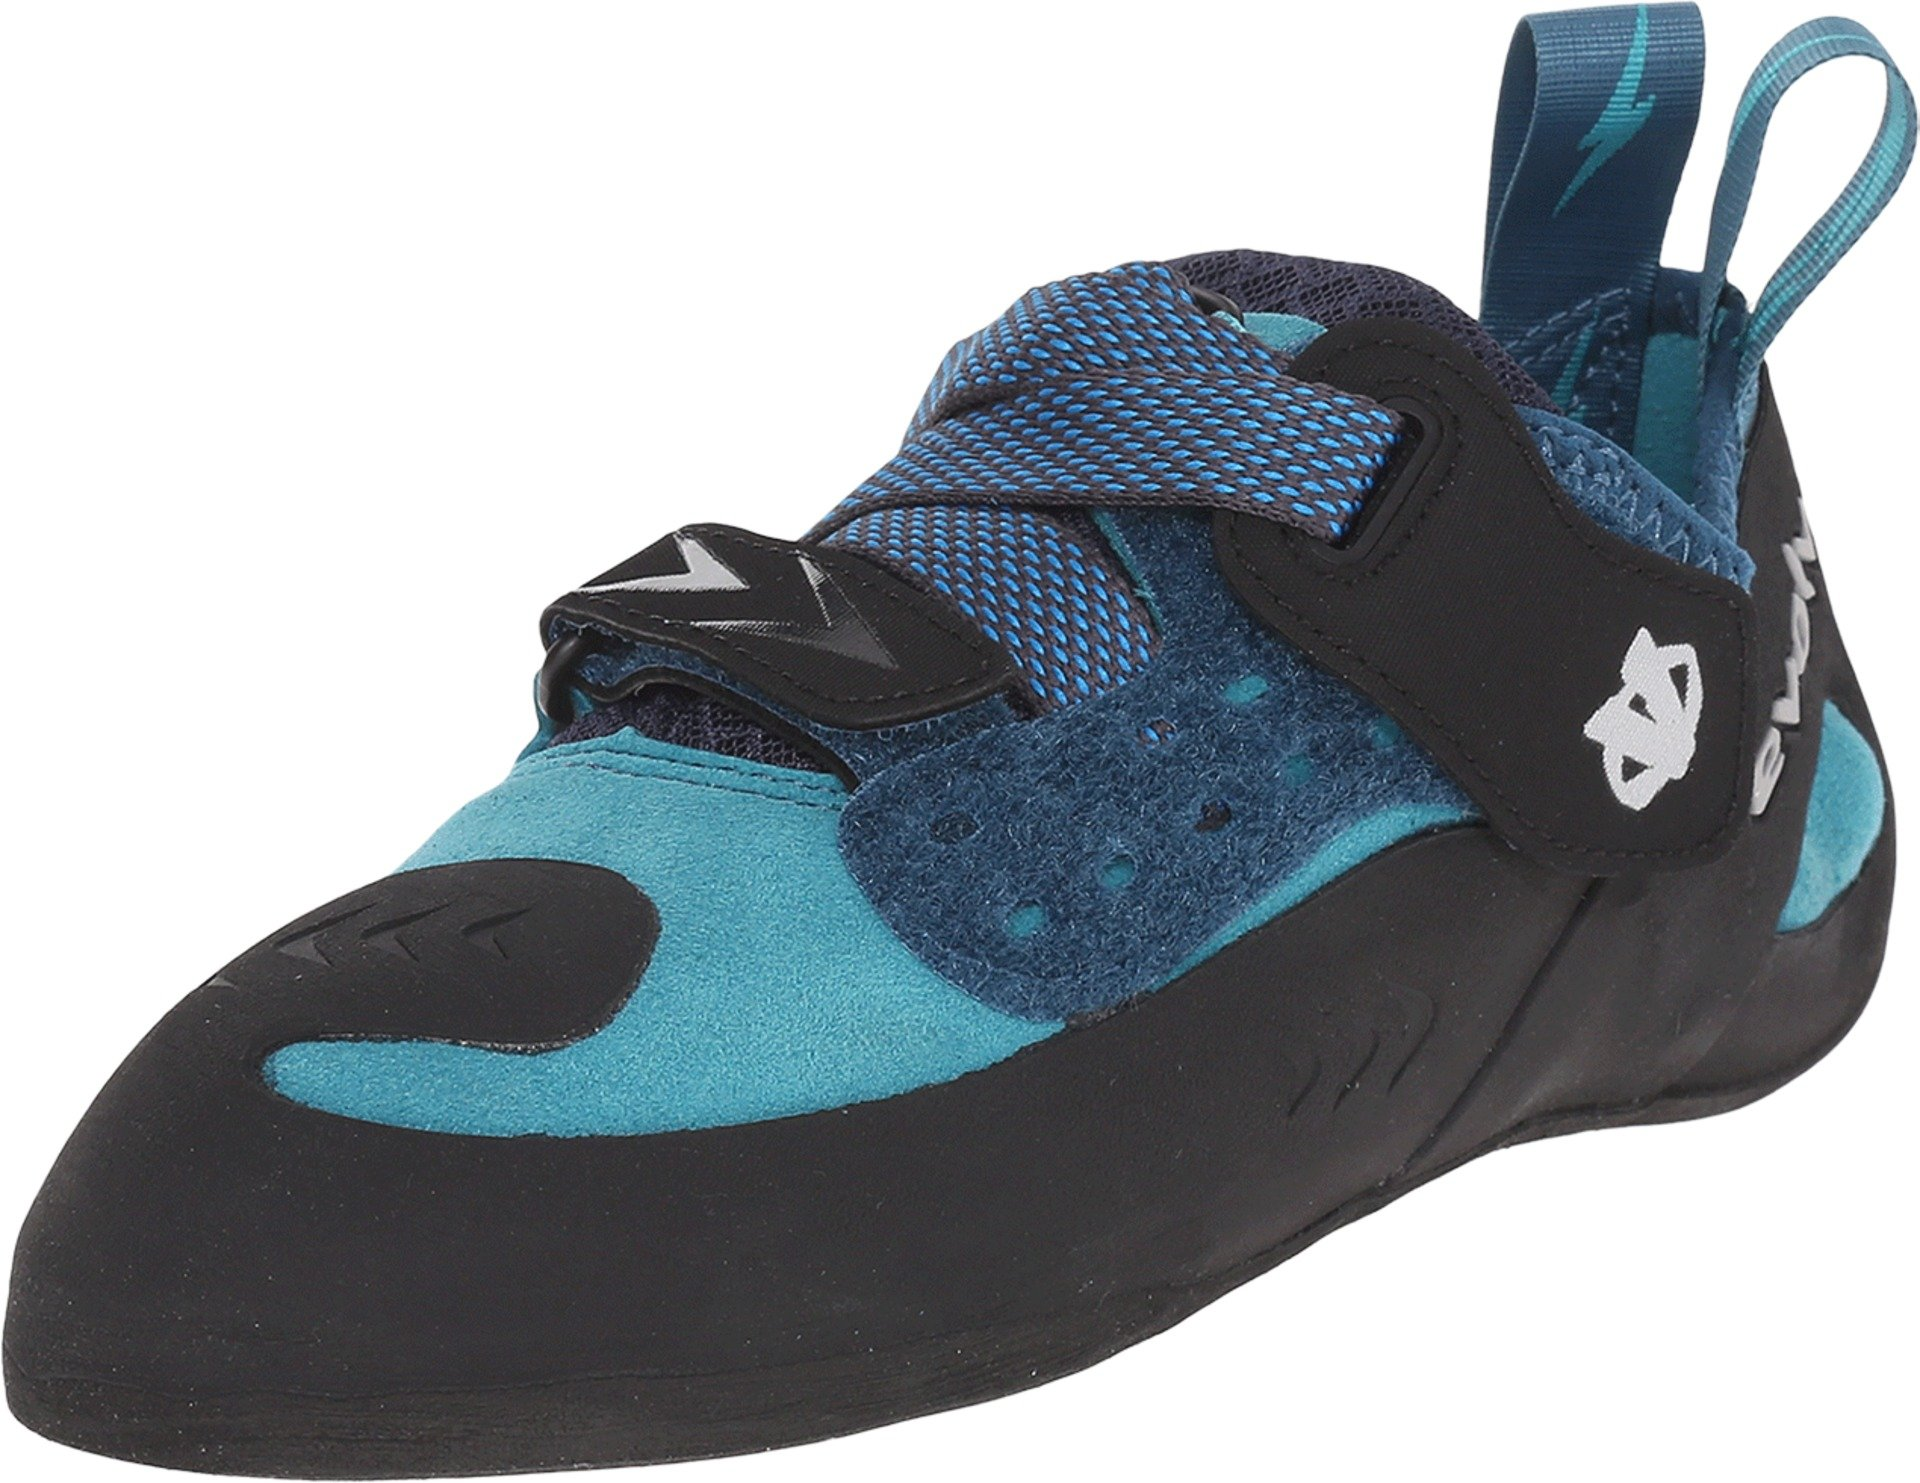 Evolv Kira Climbing Shoe - Women's Teal 4 (Closeout)